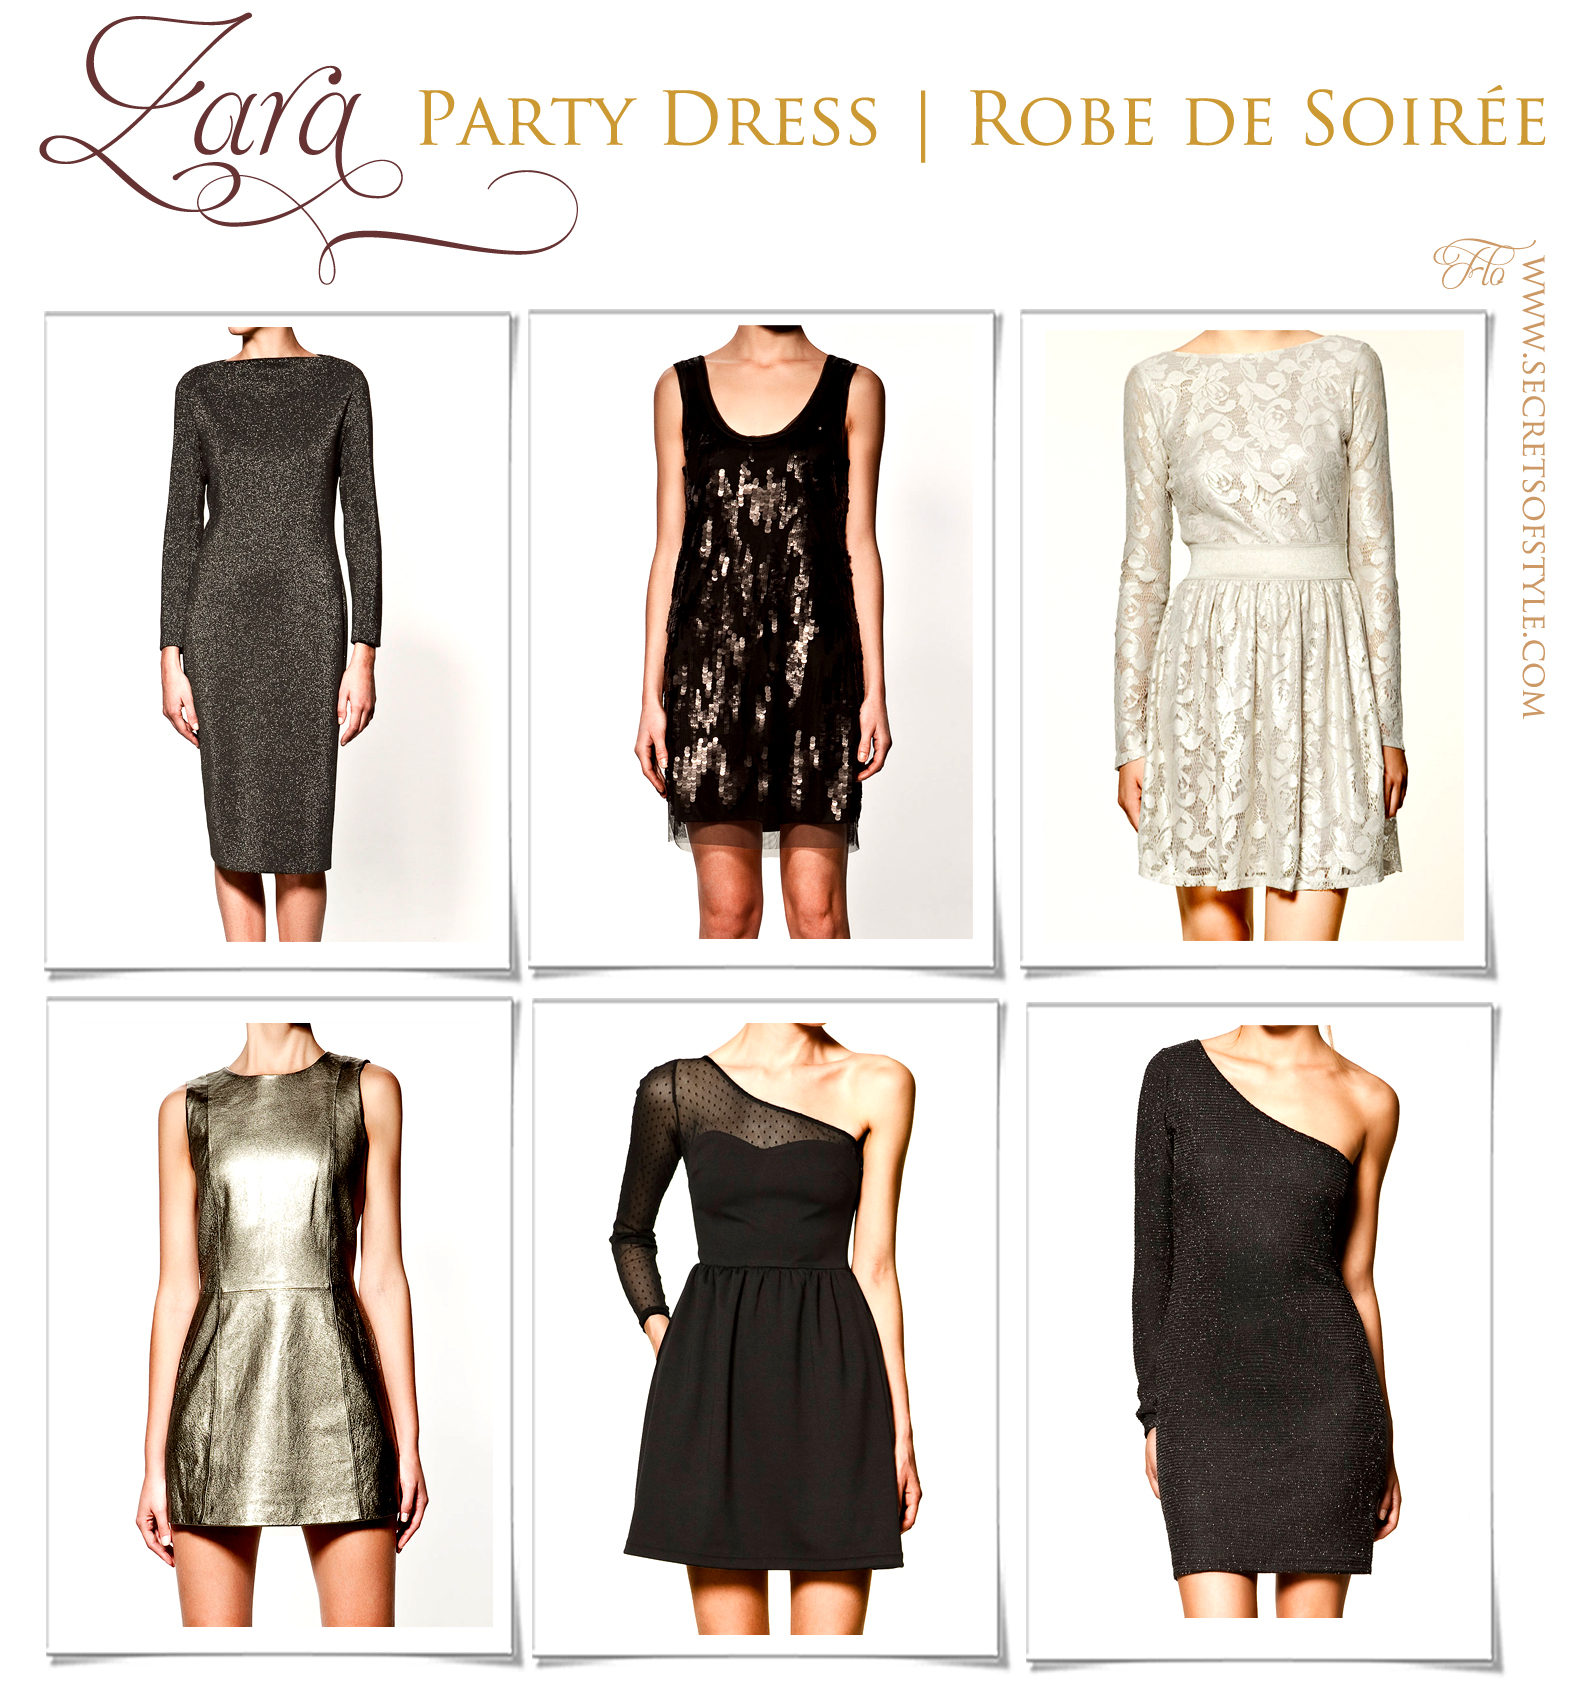 Zara Party Dress Robe De Soiree Secrets Of Style By The Tv Reporter Florence Jacquinot